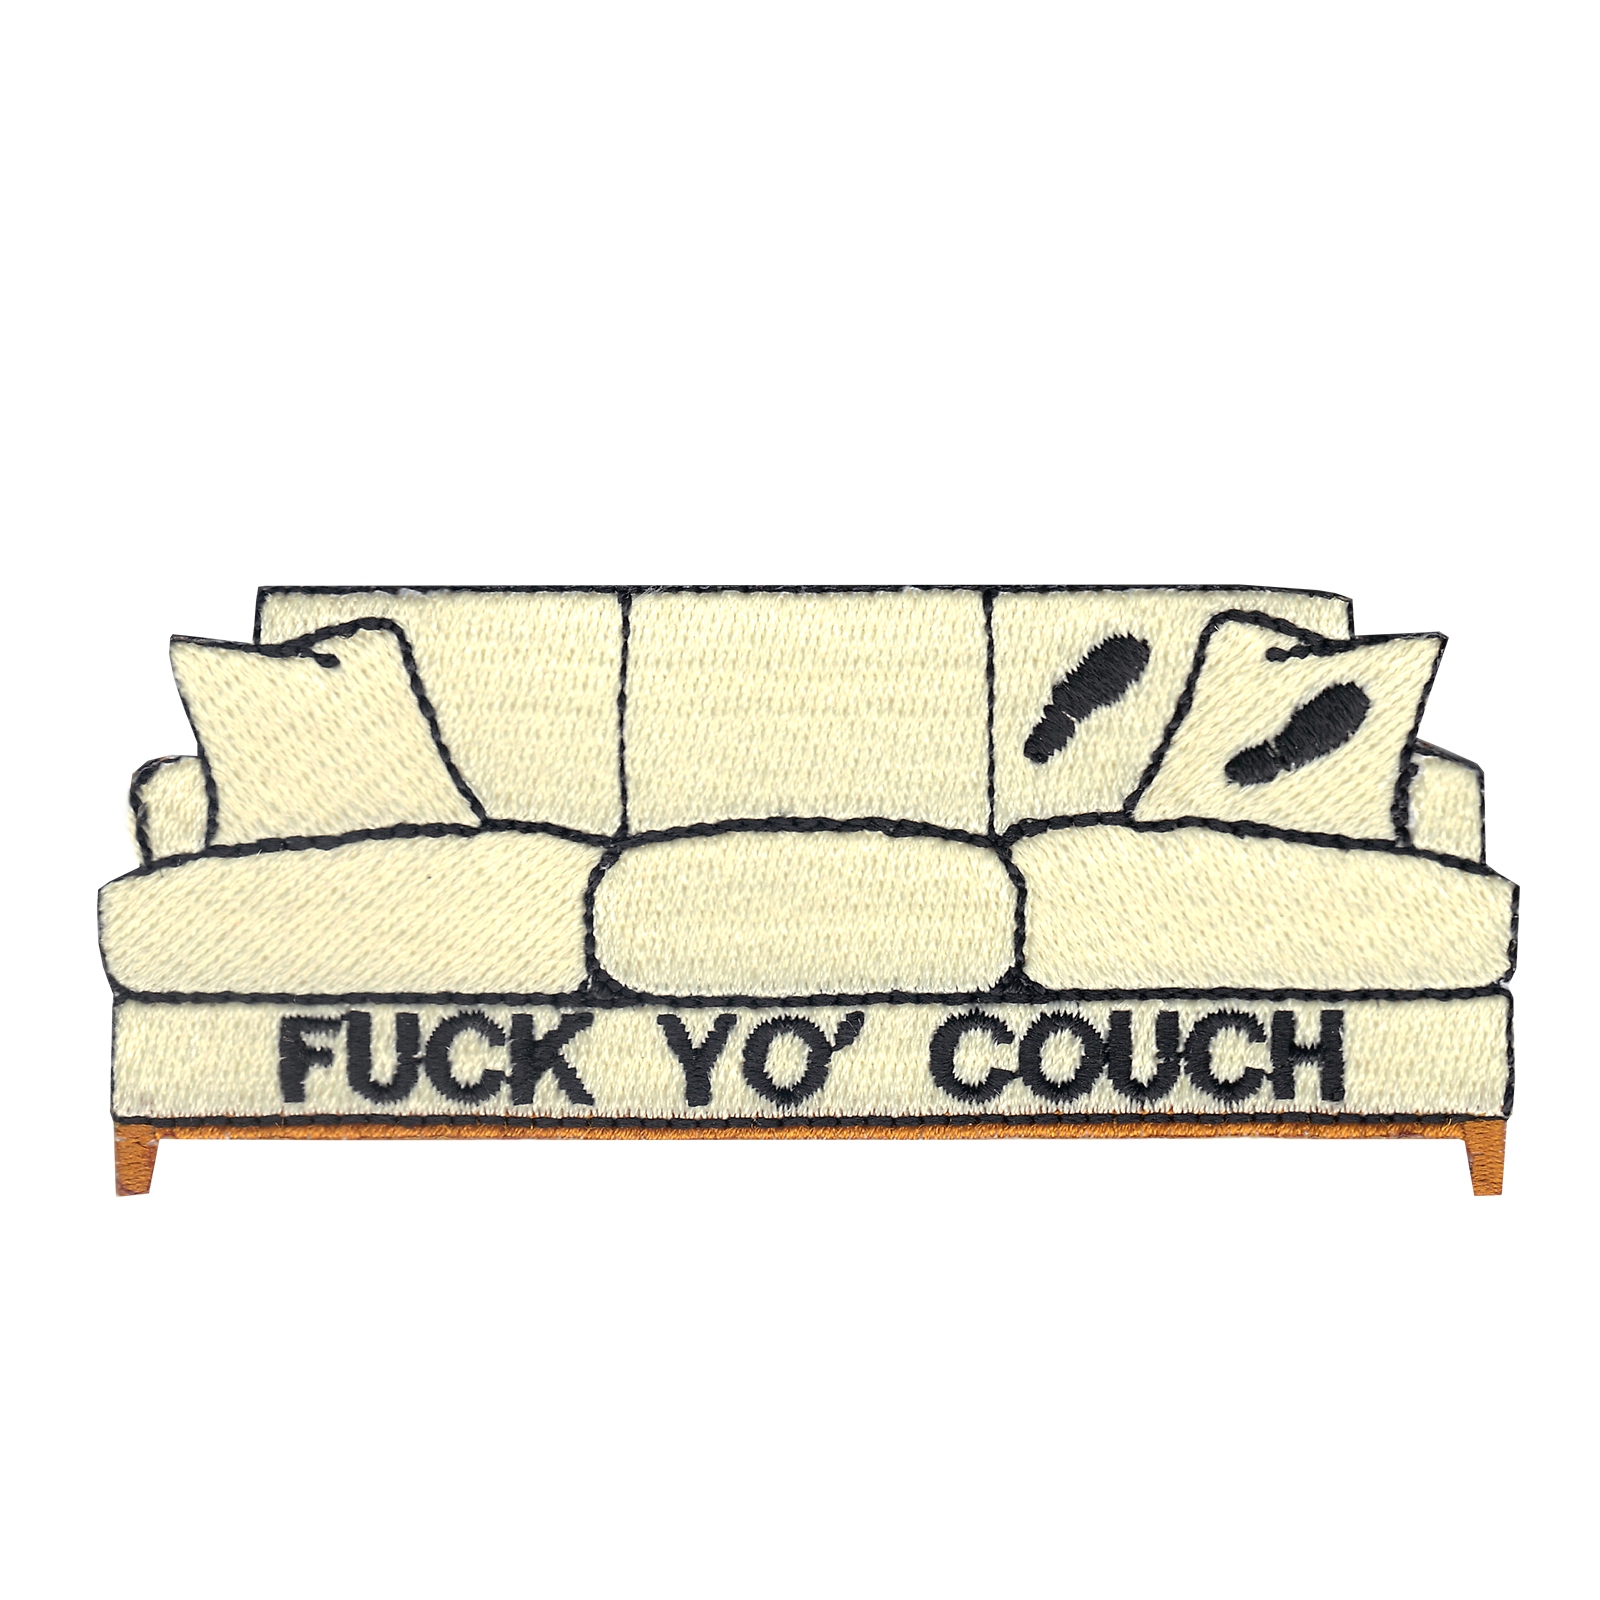 Dirty Couch Iron On Applique Patch